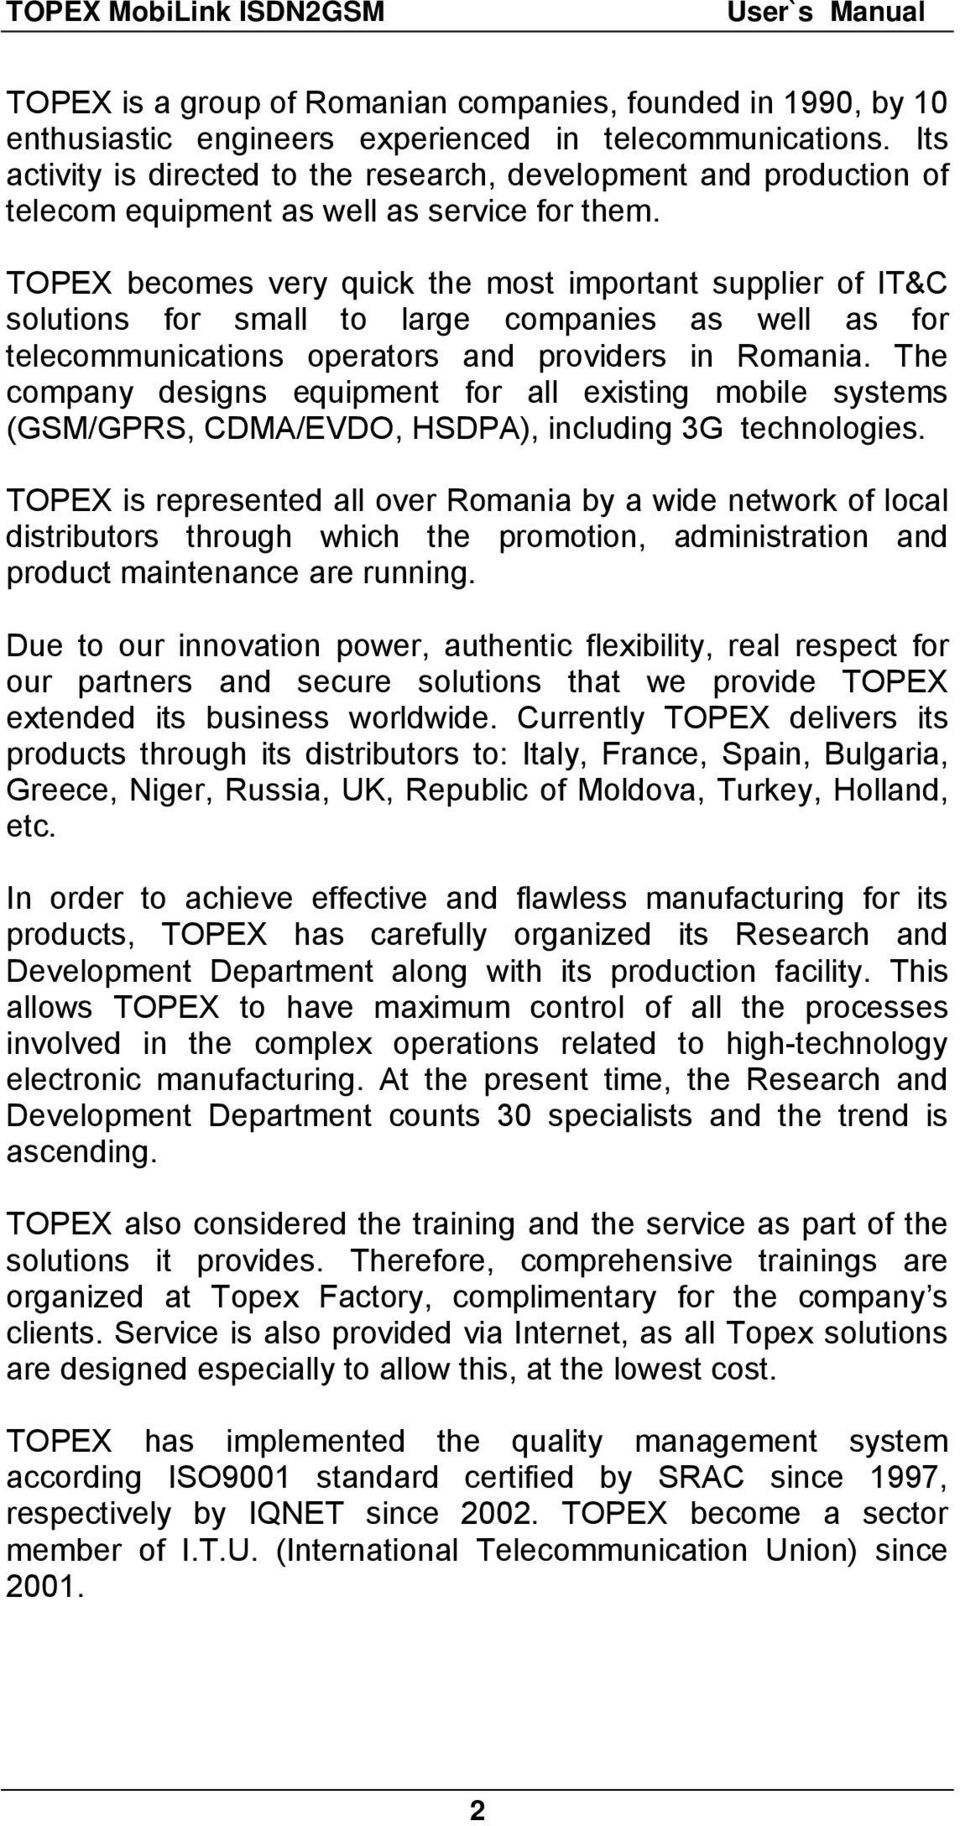 TOPEX becomes very quick the most important supplier of IT&C solutions for small to large companies as well as for telecommunications operators and providers in Romania.